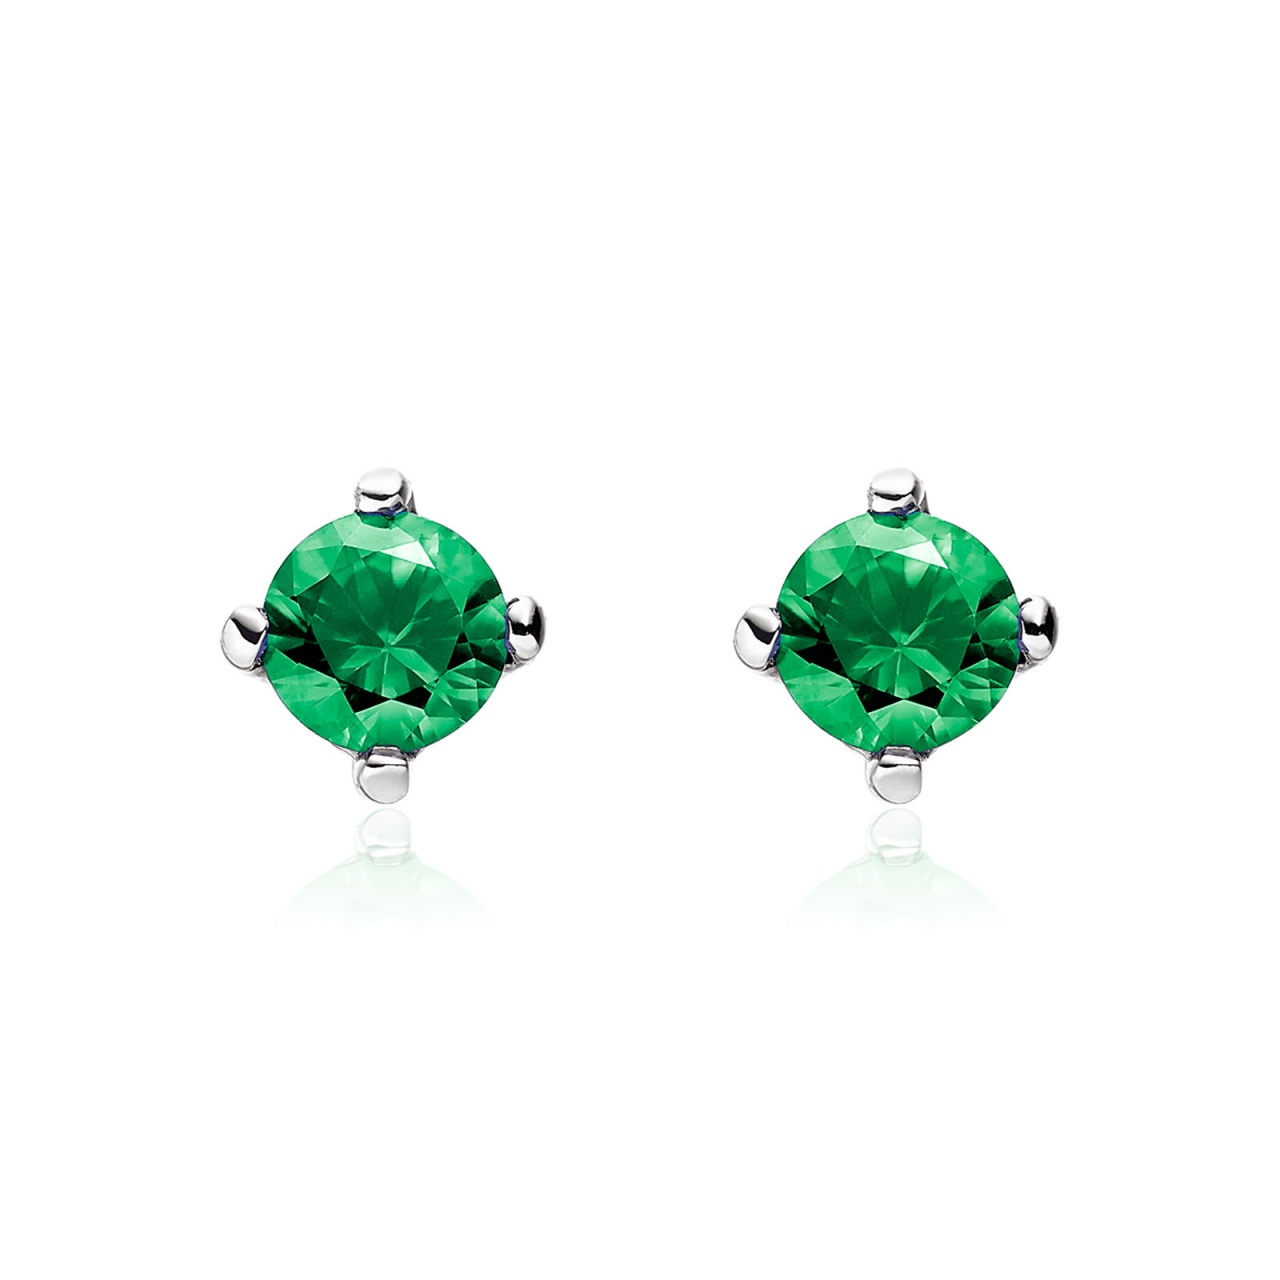 Emerald Stud Earrings in 18 Carat White Gold-1